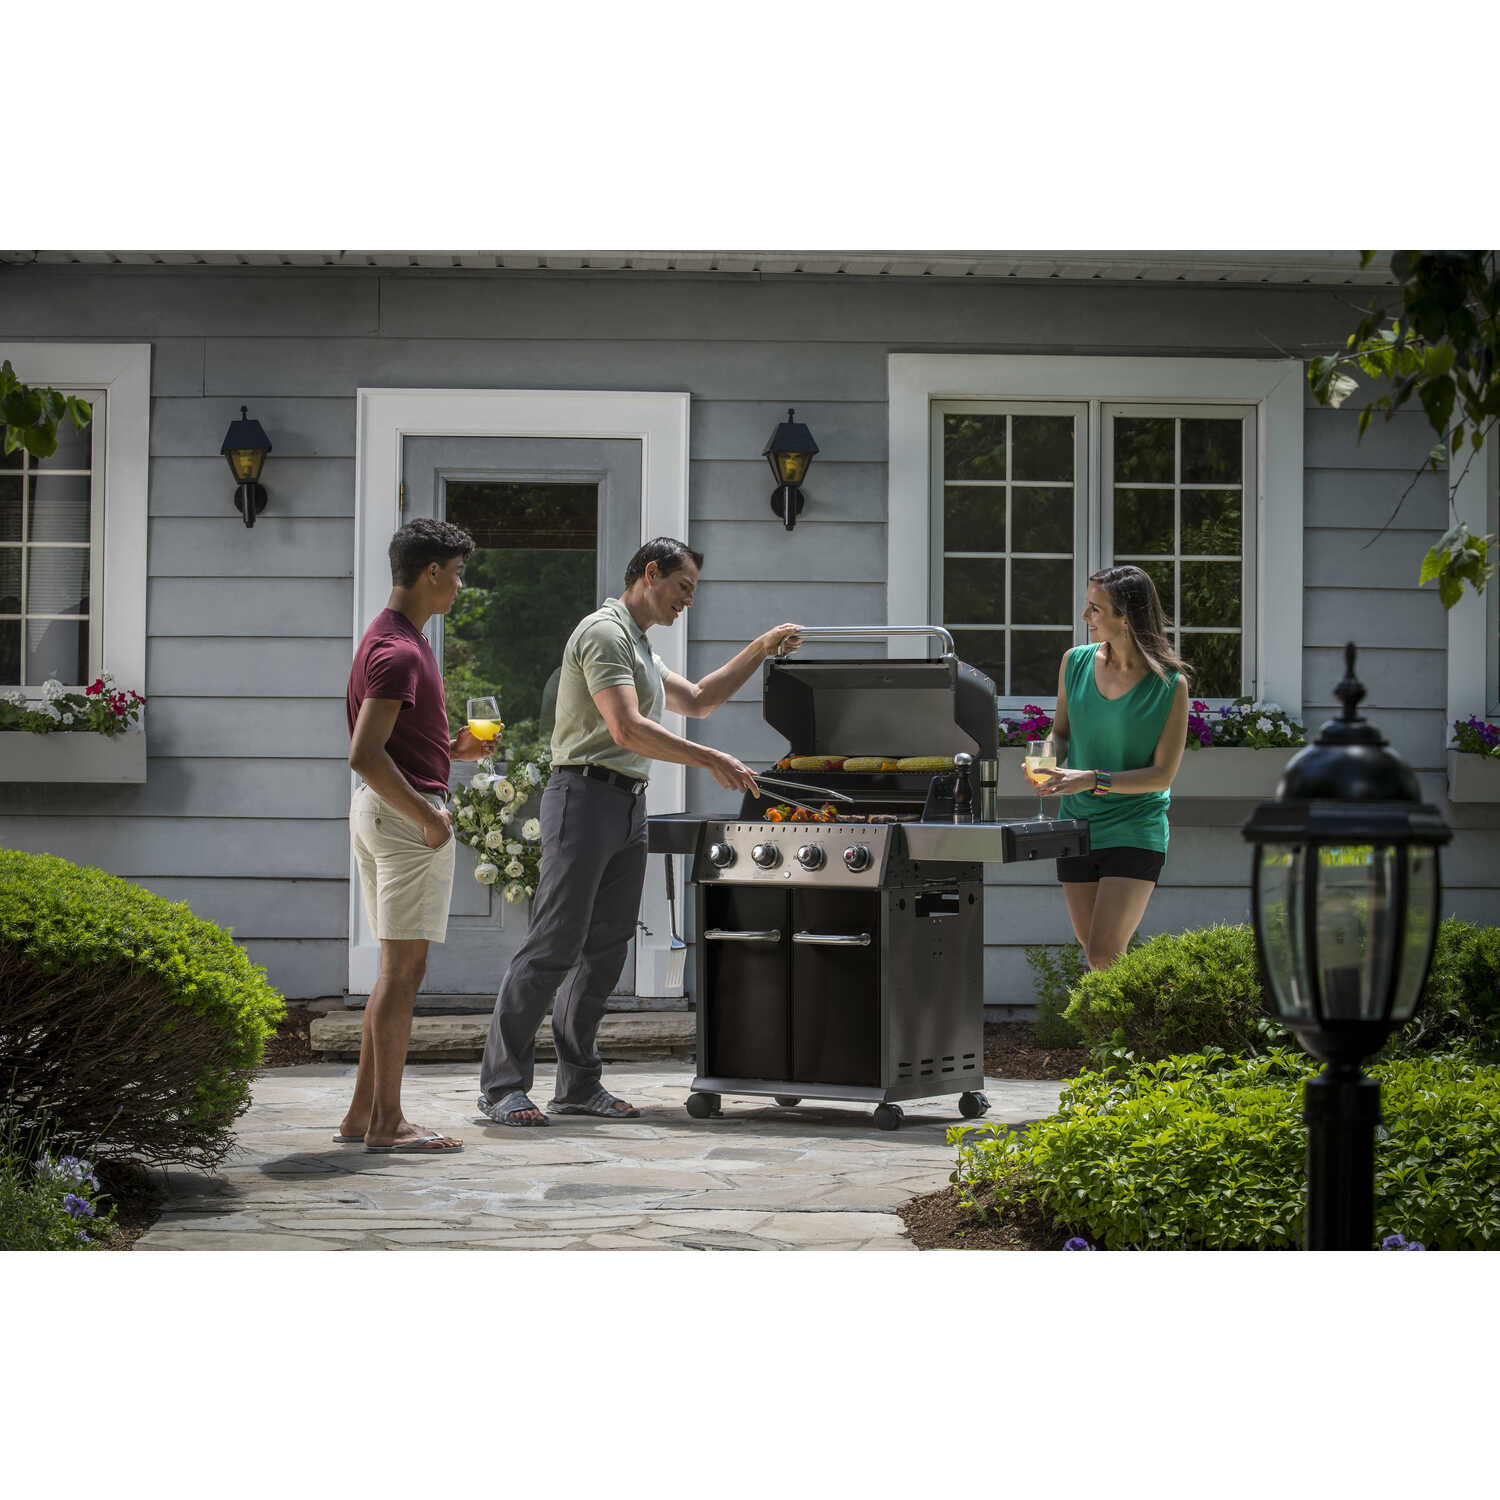 Broil King  Baron PRO Series  Liquid Propane  Freestanding  Grill  Black  4 burners